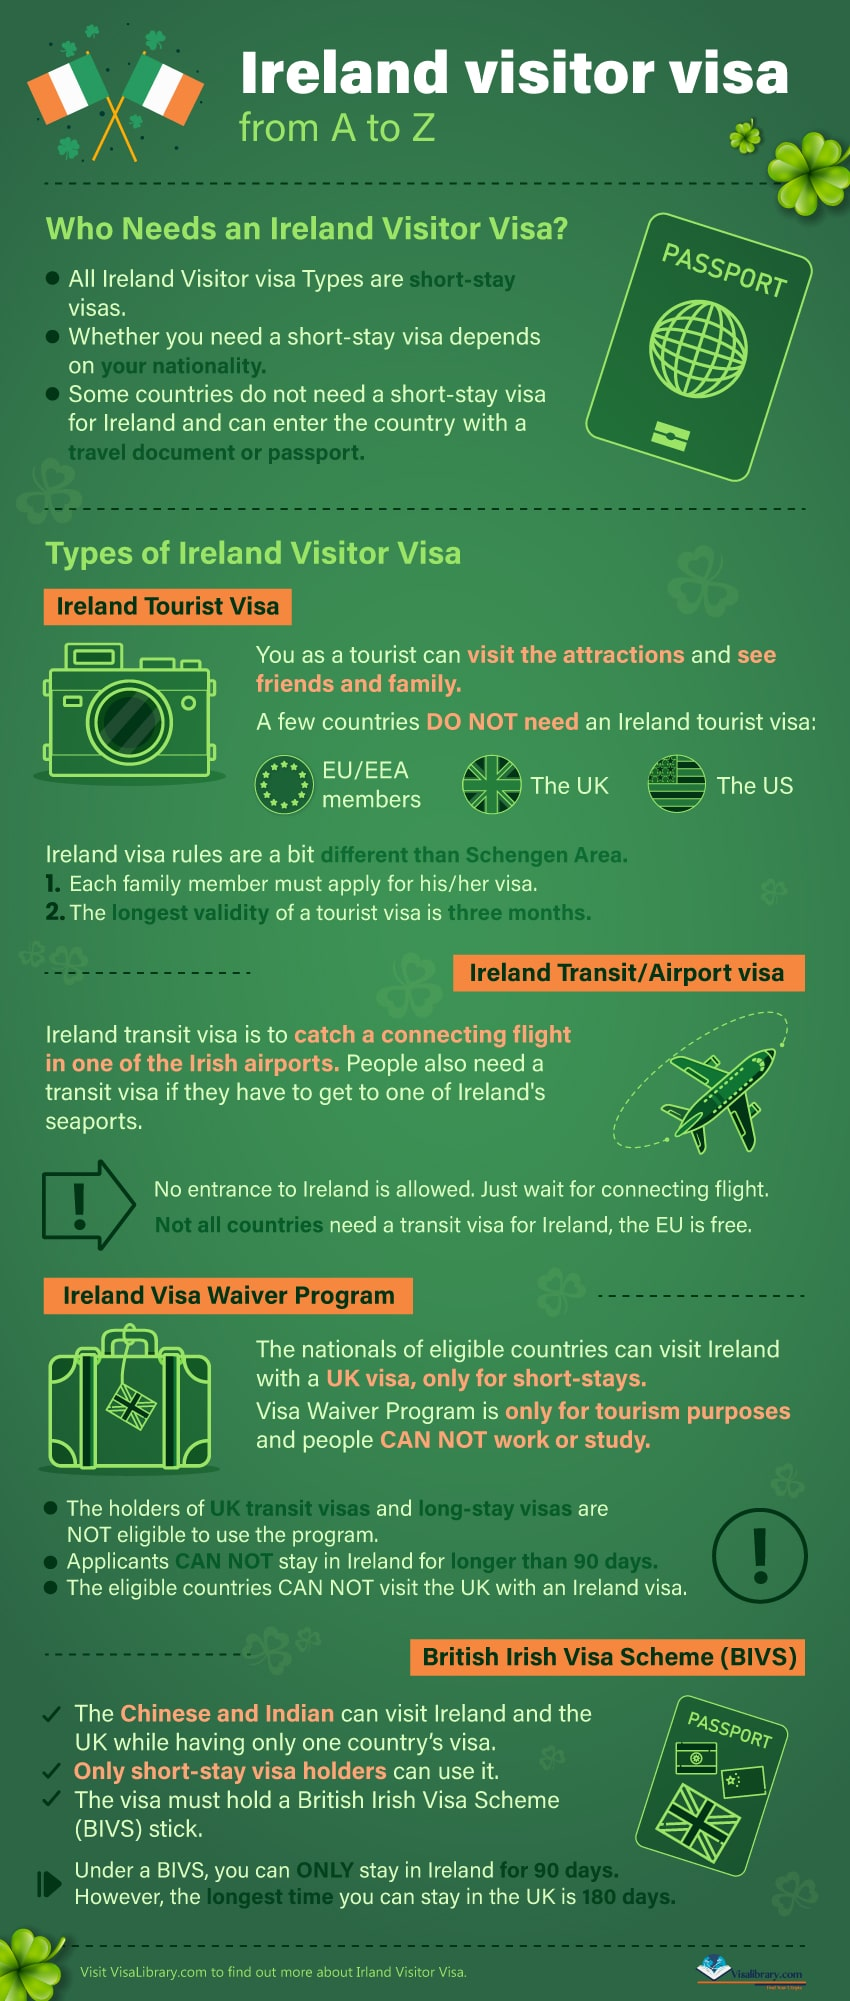 Ireland visitor visa from A to Z info